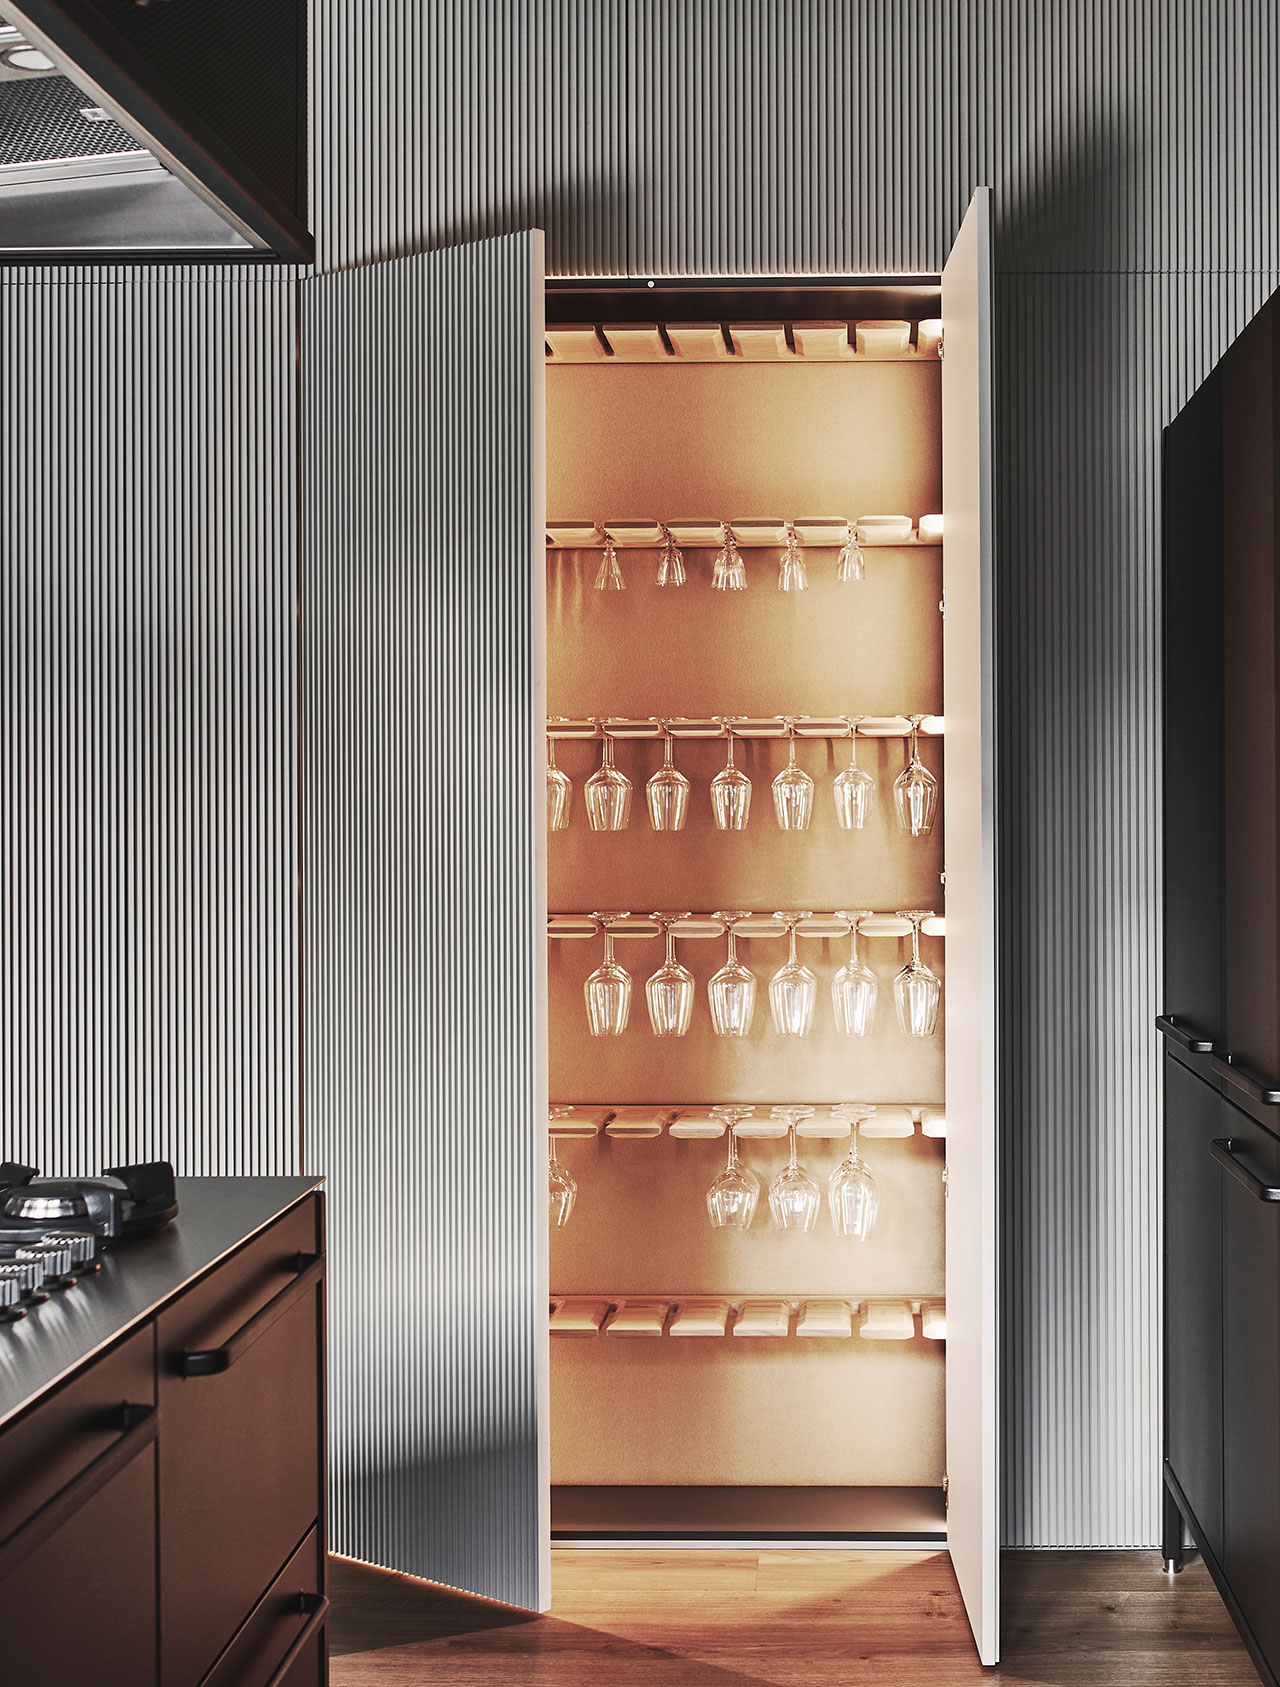 Photography by Adrian Gaut.Styling by Colin King. © Vipp Featured:Interior details of the Elie Chaker millwork. The custom wine glass storage was designed by Sofie, Frank, and Raëd Abillama Architects. Extruded Aluminum cabinets.Kvadrat's Hero felt backing. Oak wine glass racks.